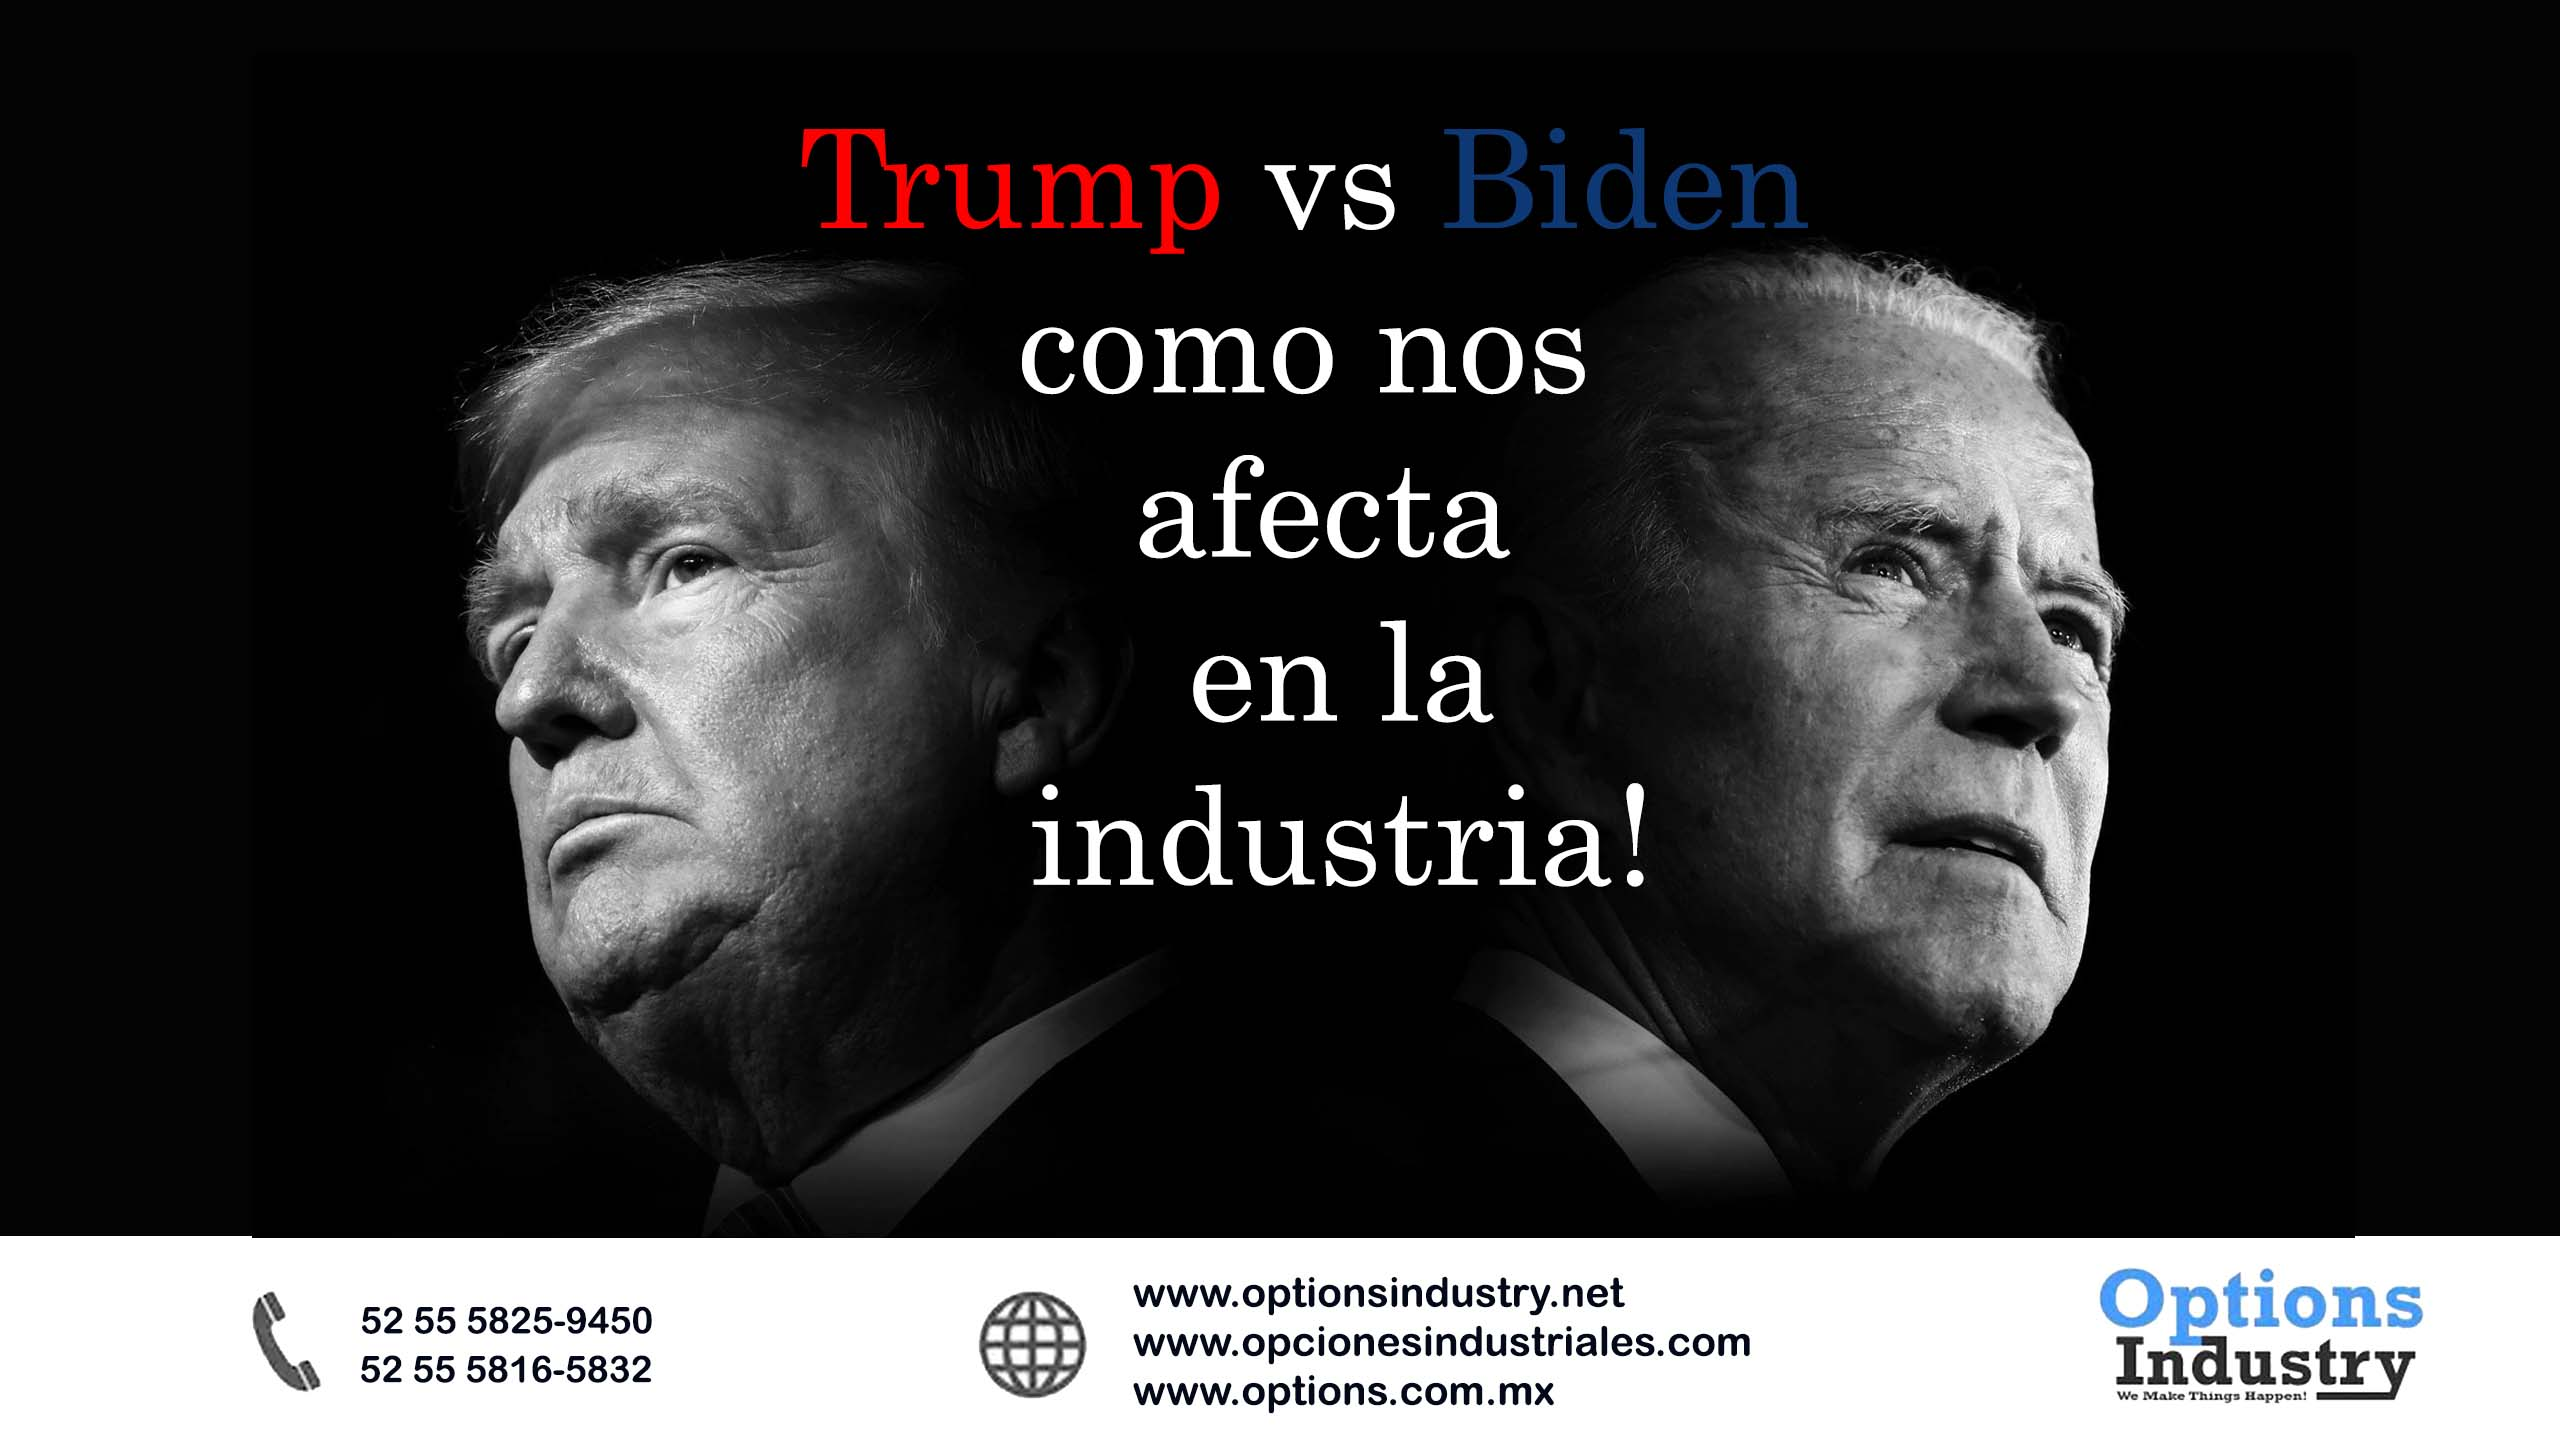 WAR TRUMP VS BIDEN!!